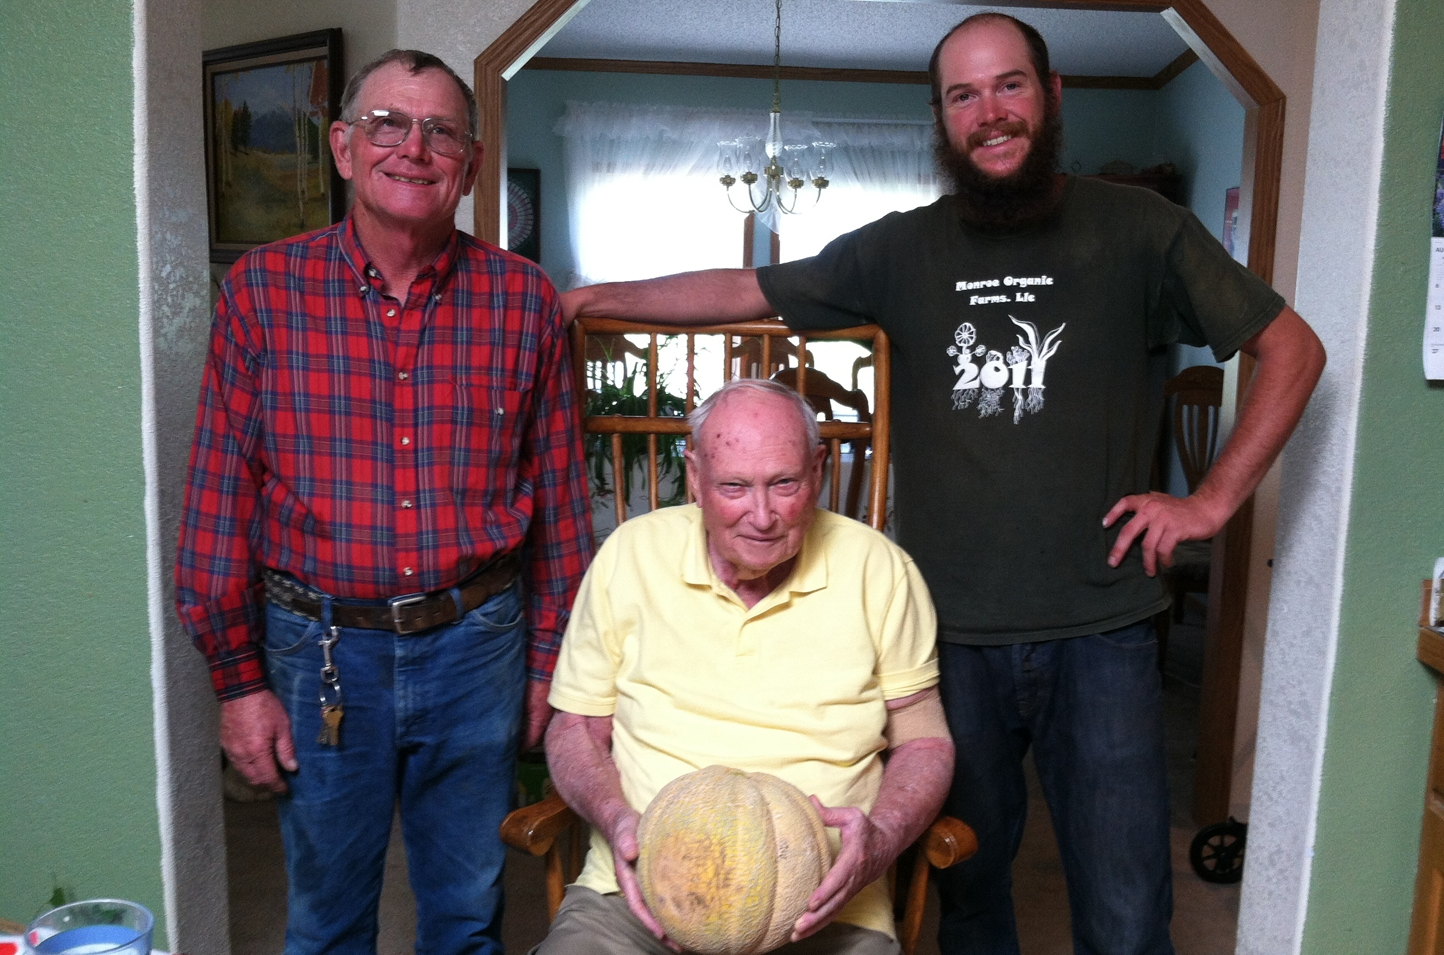 Members of the Monroe family with a 'Greeley Wonder' melon. Left to right: Jerry Jr., Jerry Sr. (who first listed the melon in the Yearbook), and Kyle, Jerry Jr.'s son.